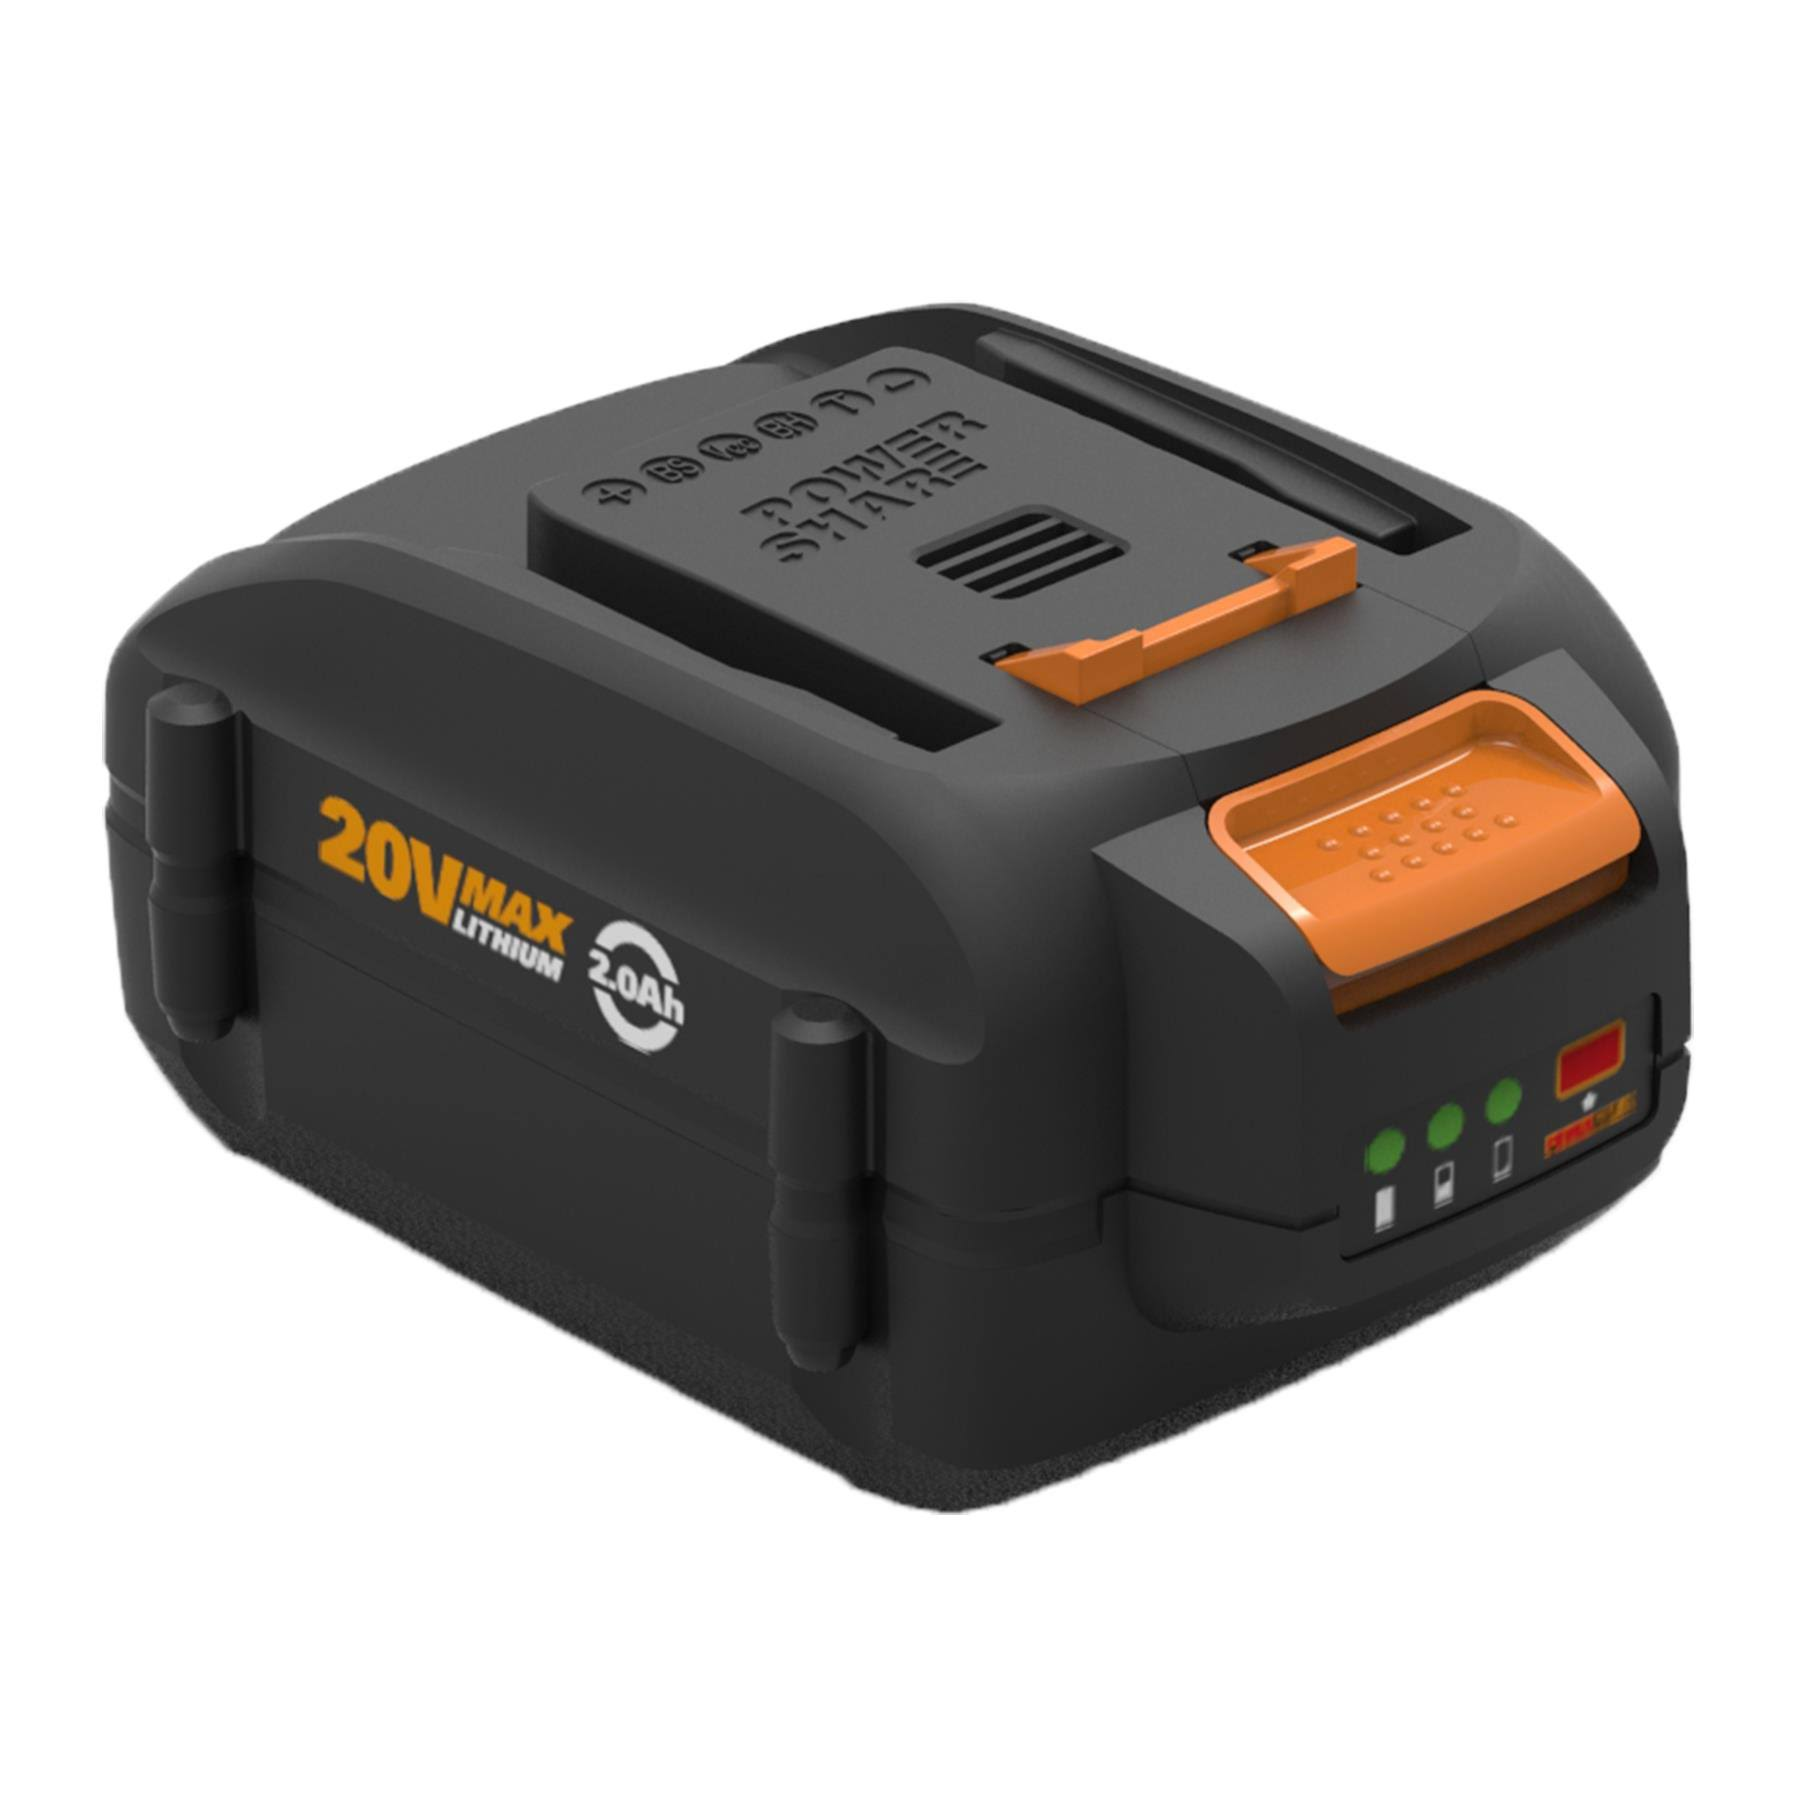 Worx Lithium-ion High Capacity Battery - 20V, 4.0 Amp